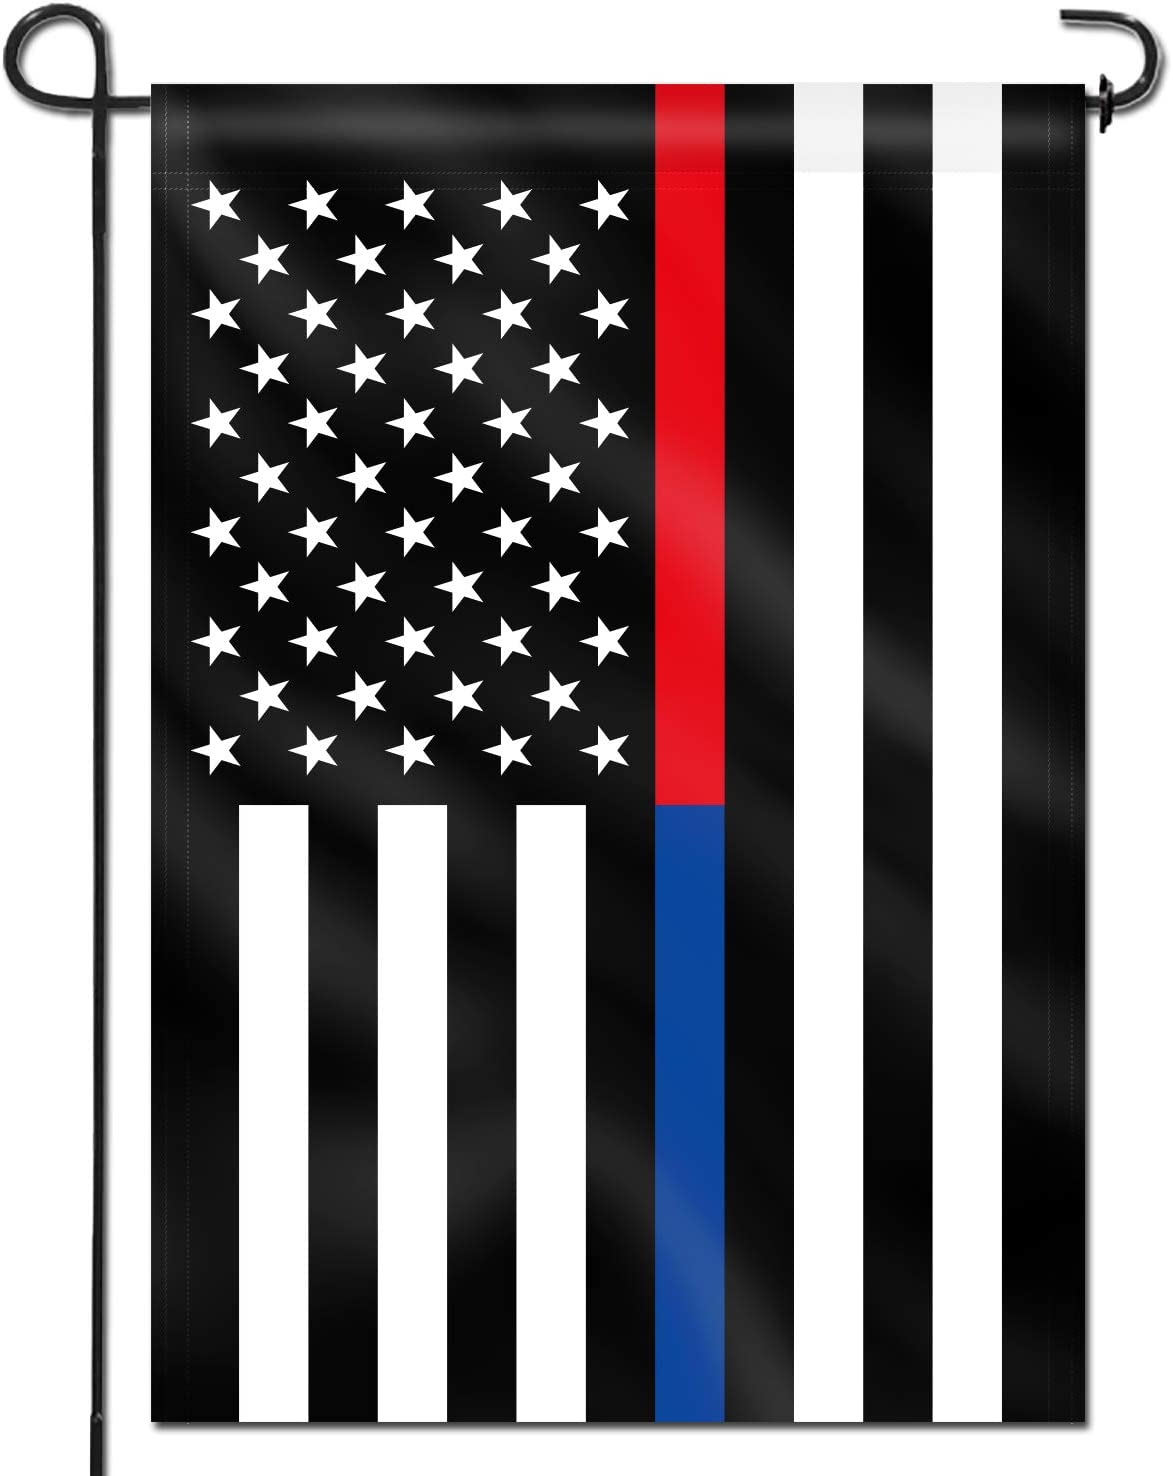 Anley Double Sided Premium Garden Flag, Thin Blue and Red Line USA Decorative Garden Flags - Weather Resistant & Double Stitched - 18 x 12.5 Inch